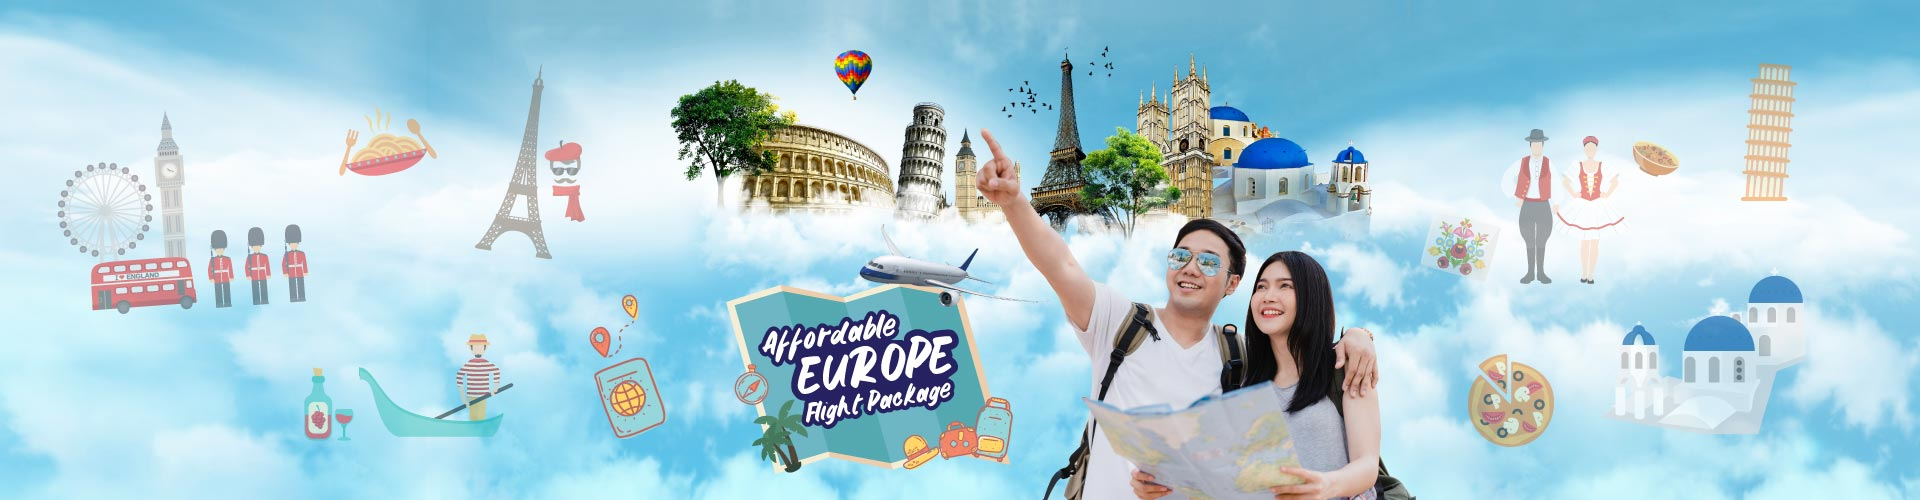 Affordable Europe Flight Package